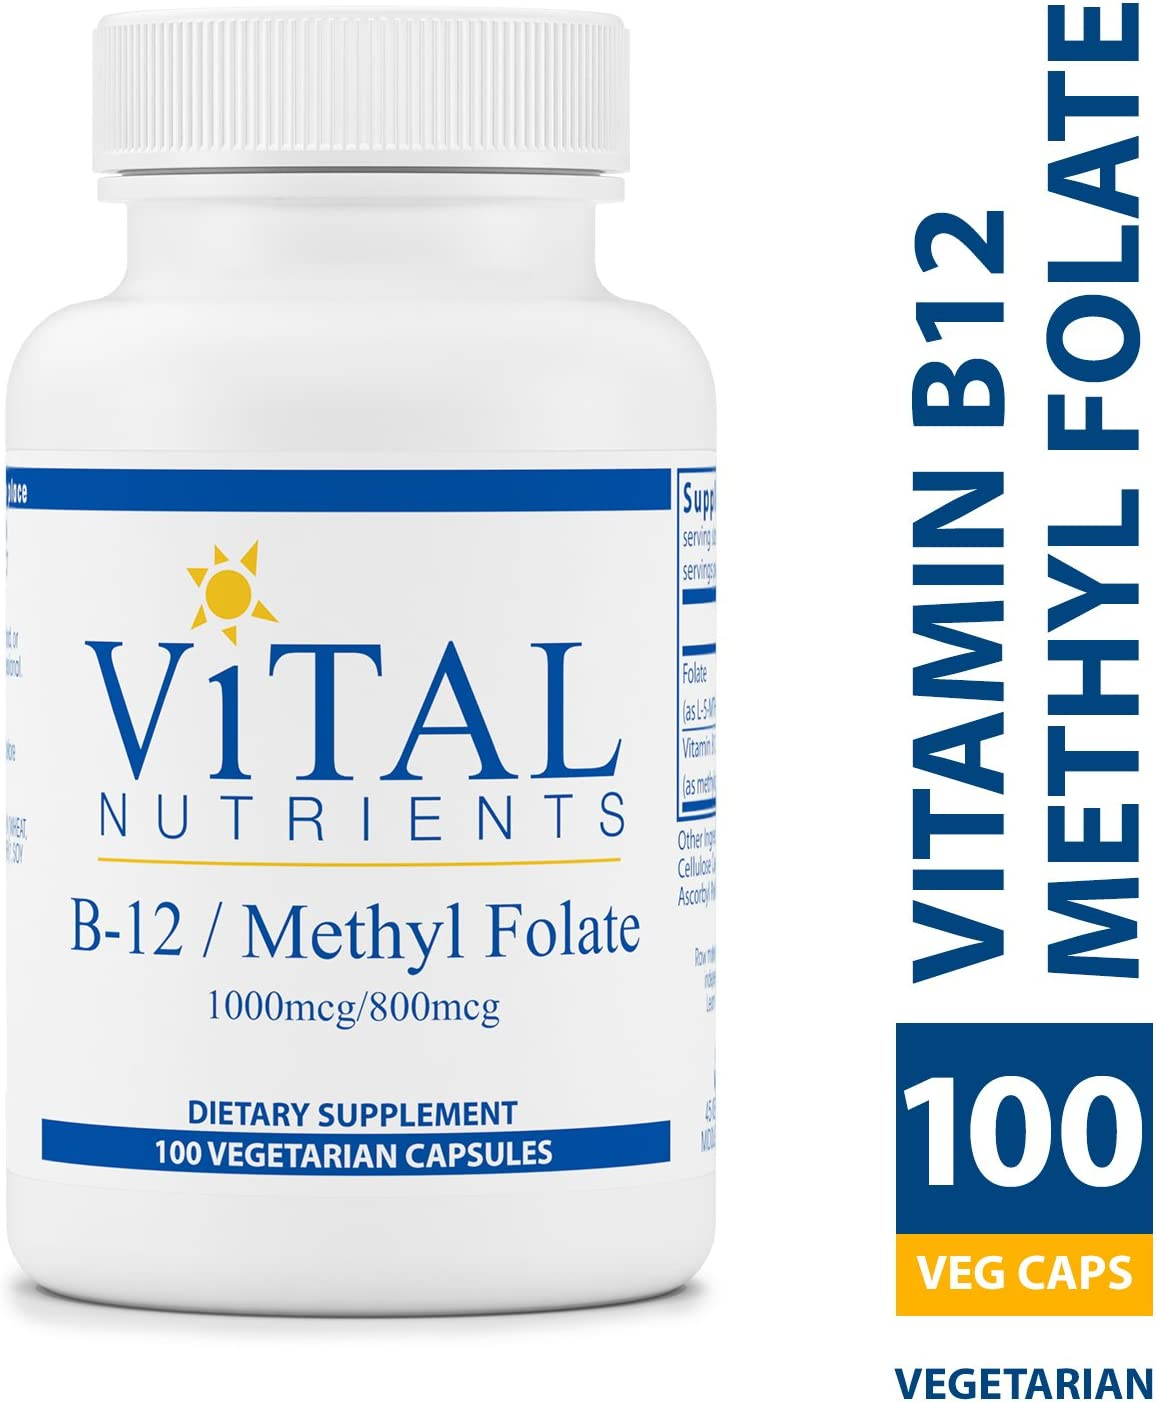 Vital Nutrients – Vitamin B12 Methyl Folate – Supports Healthy Brain Cell Function – 100 Capsules per Bottle